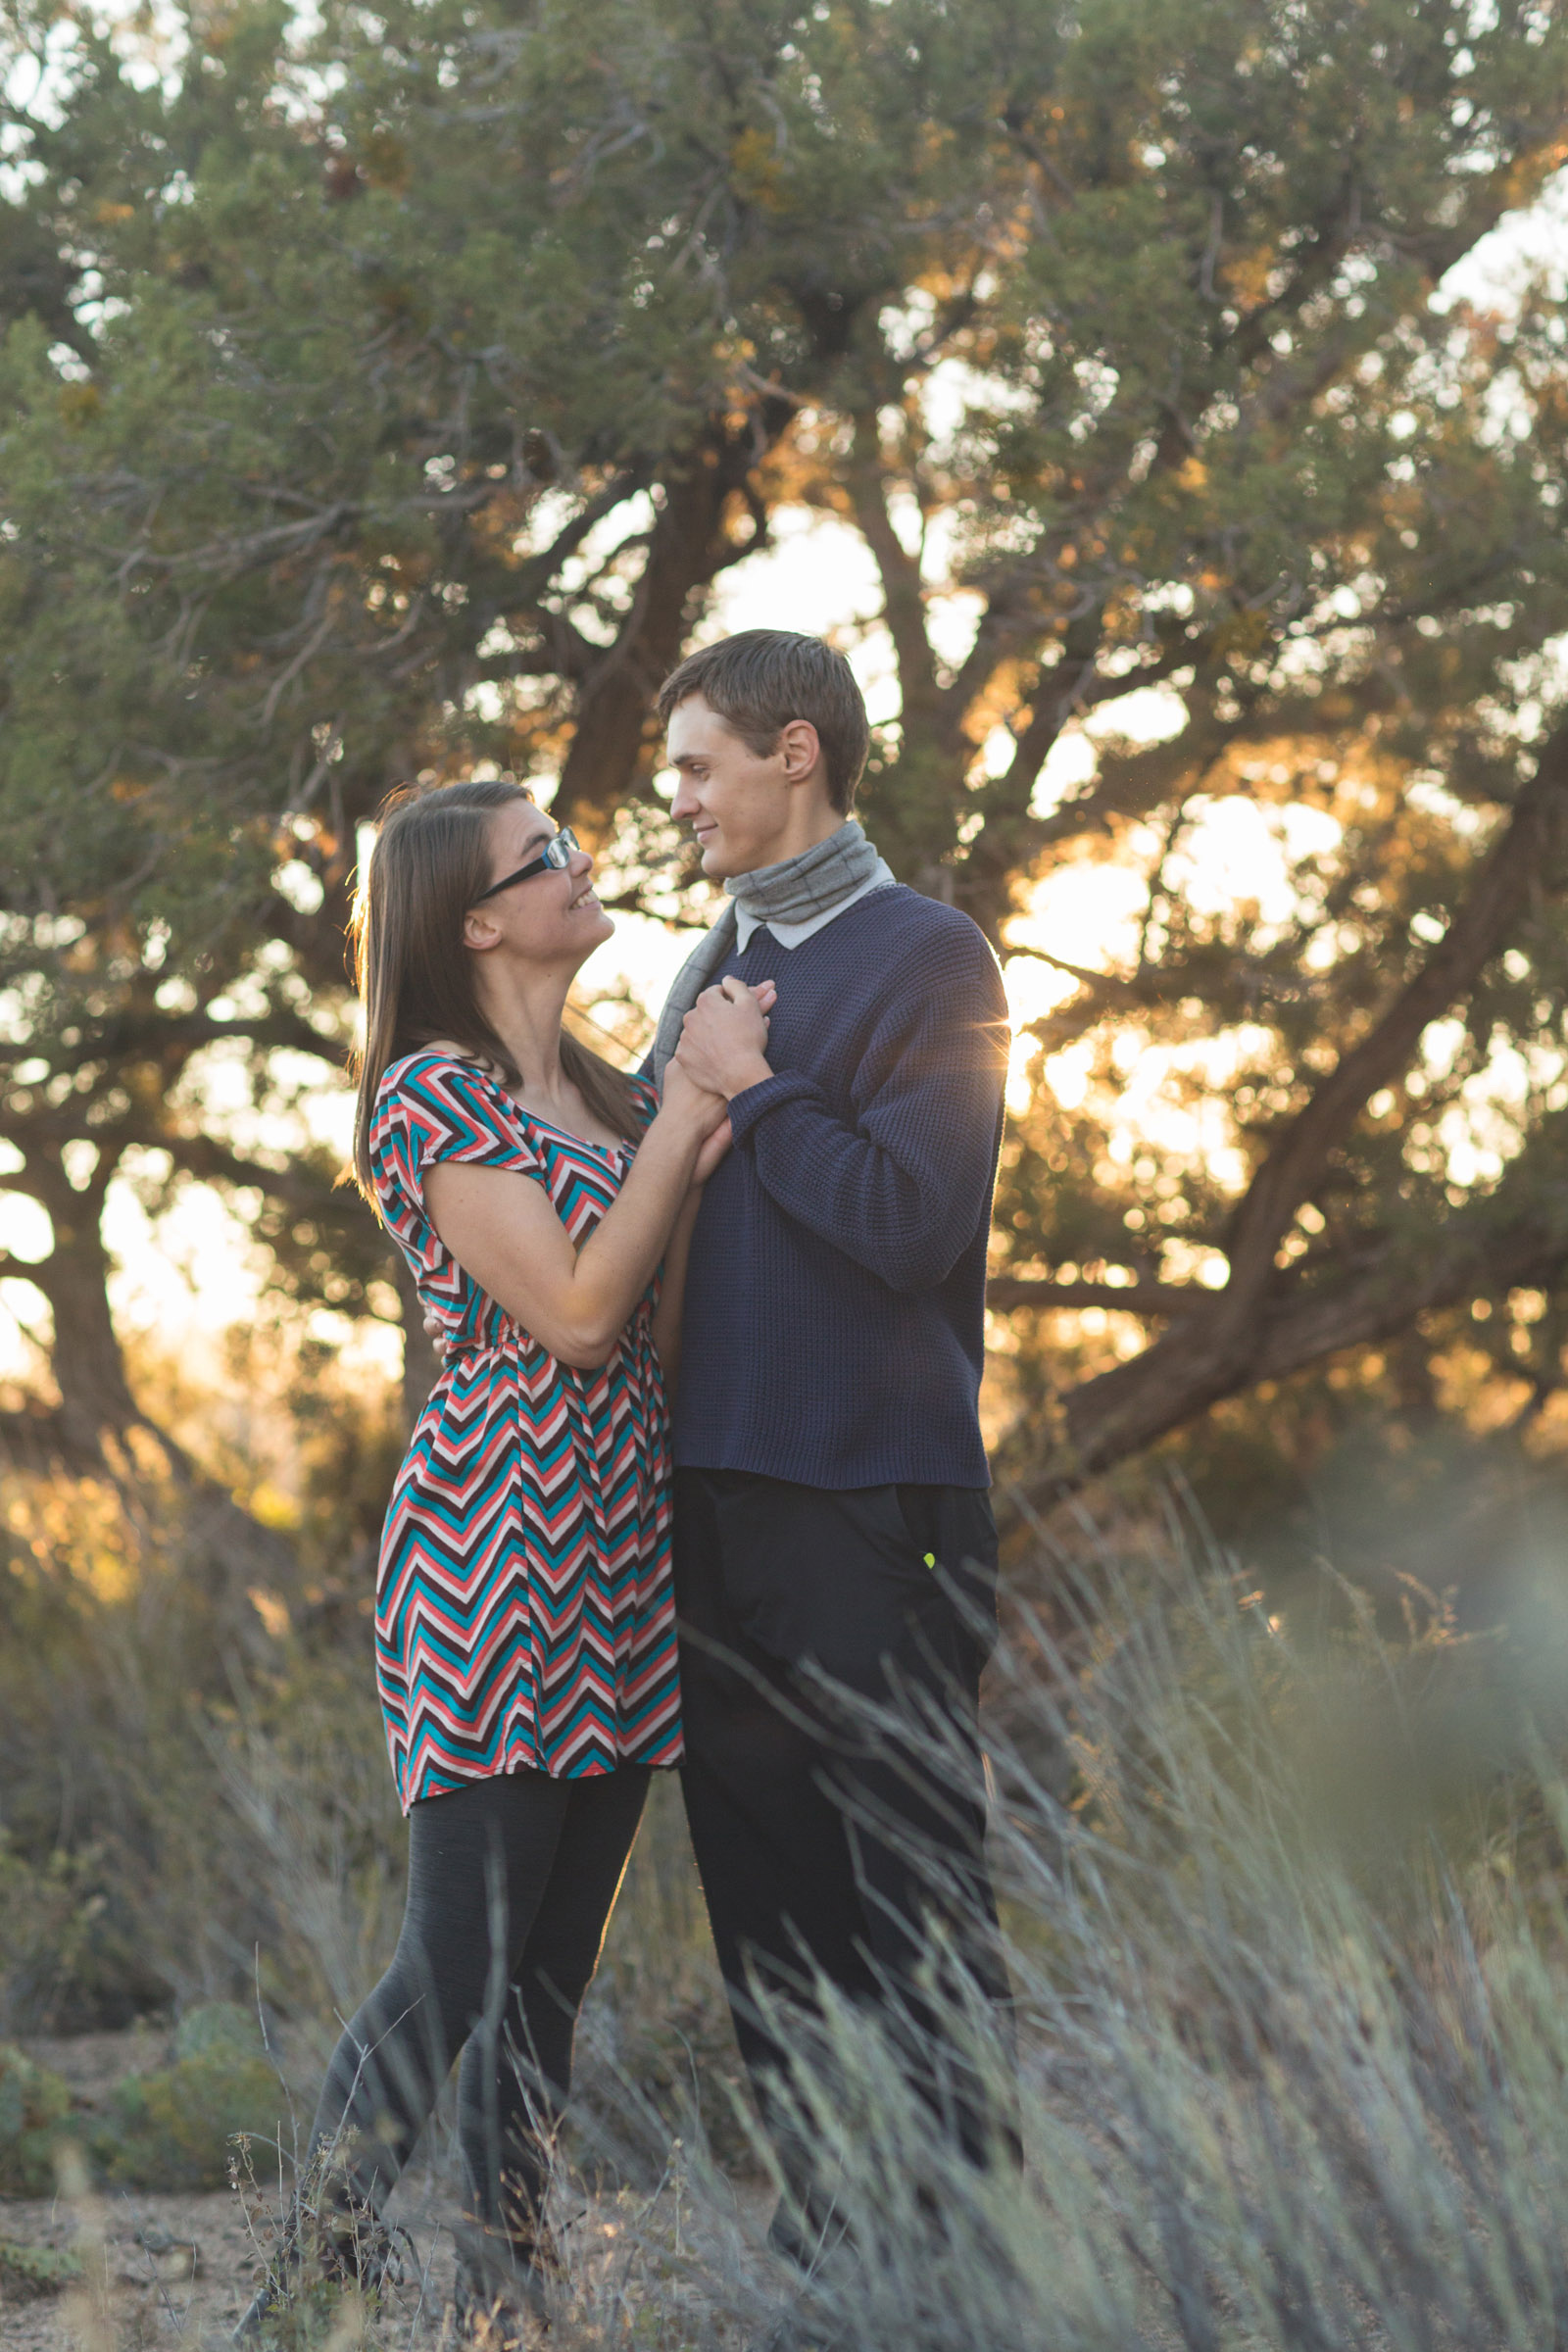 084-engagement-photographers-in-nm-farmington-and-albuquerque